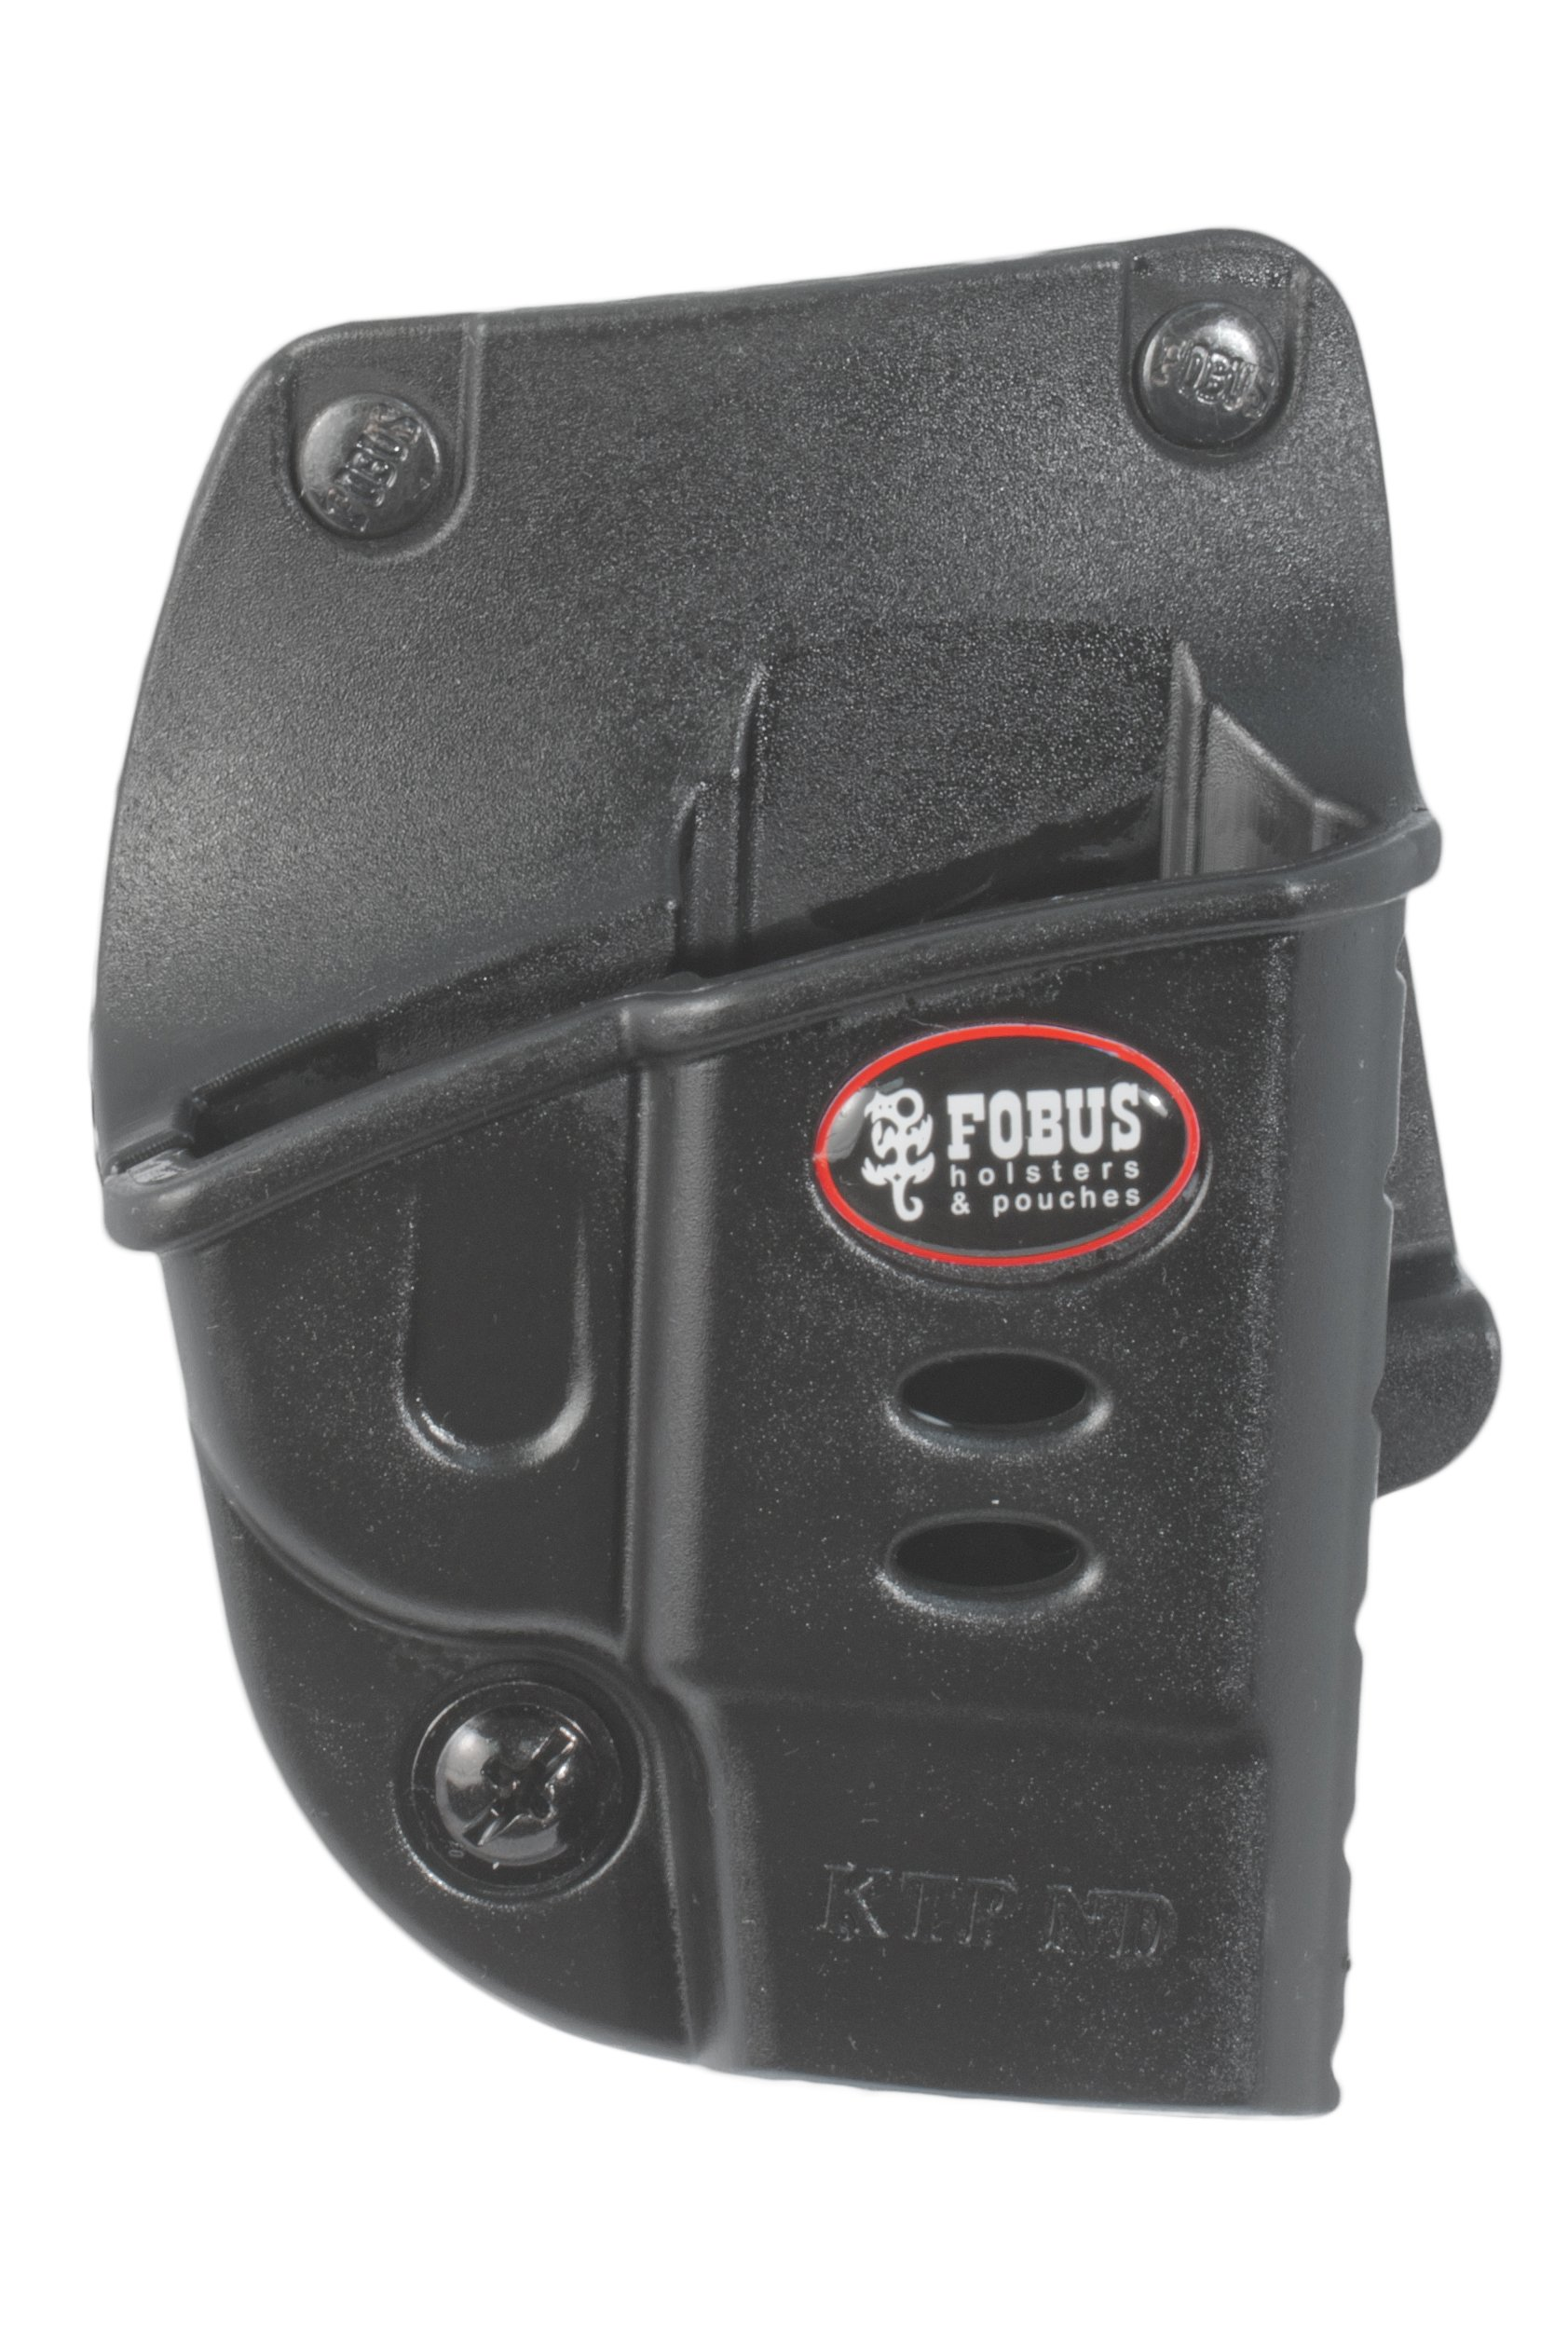 Fobus Evolution Holster Ruger LCP Kel-Tec P-3AT .380 2nd gen & .32 2nd gen by Fobus